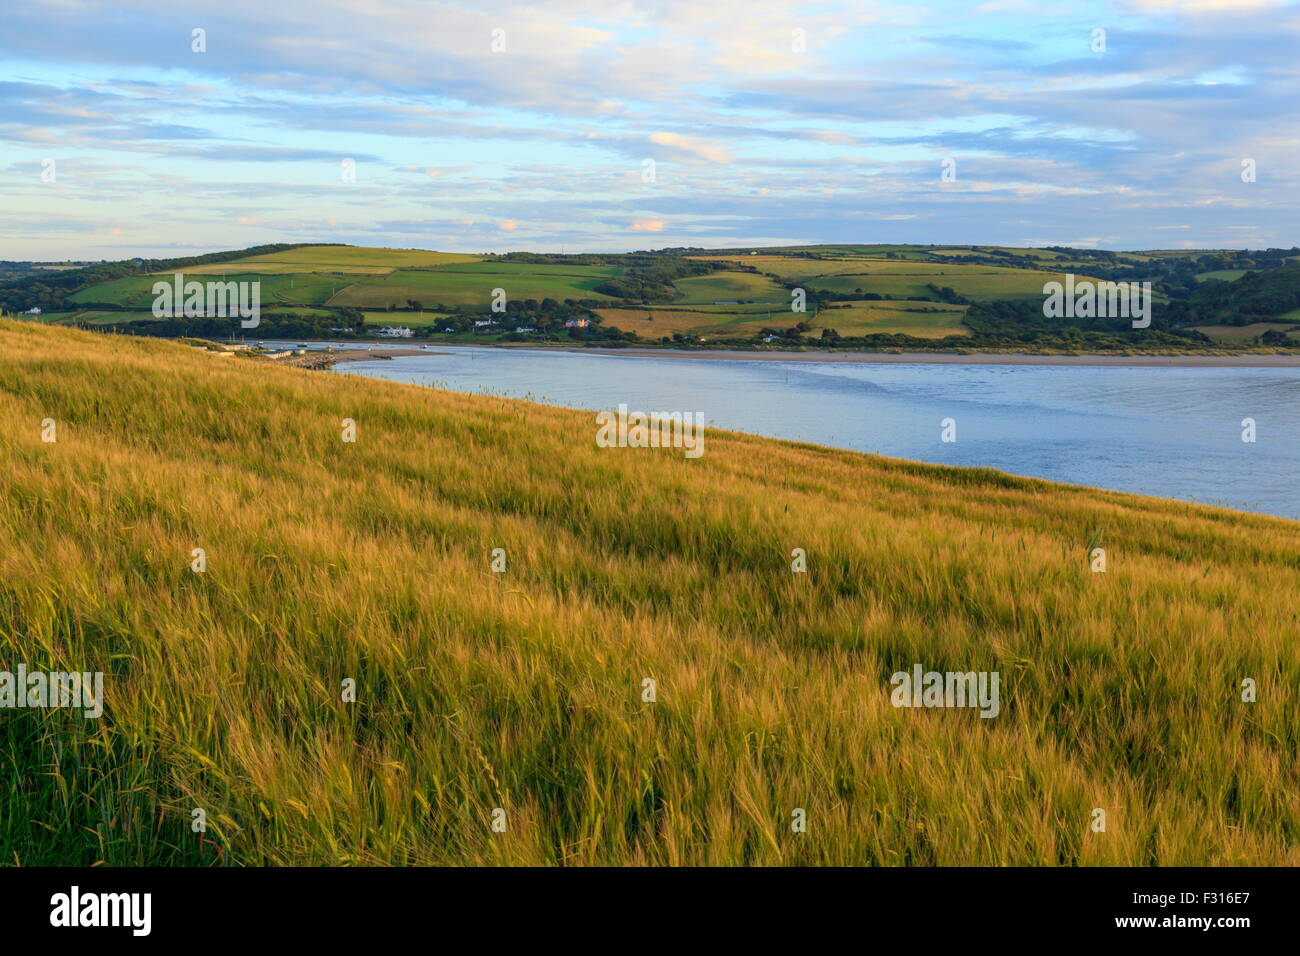 Poppit Sands and the Teifi estuary viewed from a wheat field Stock Photo